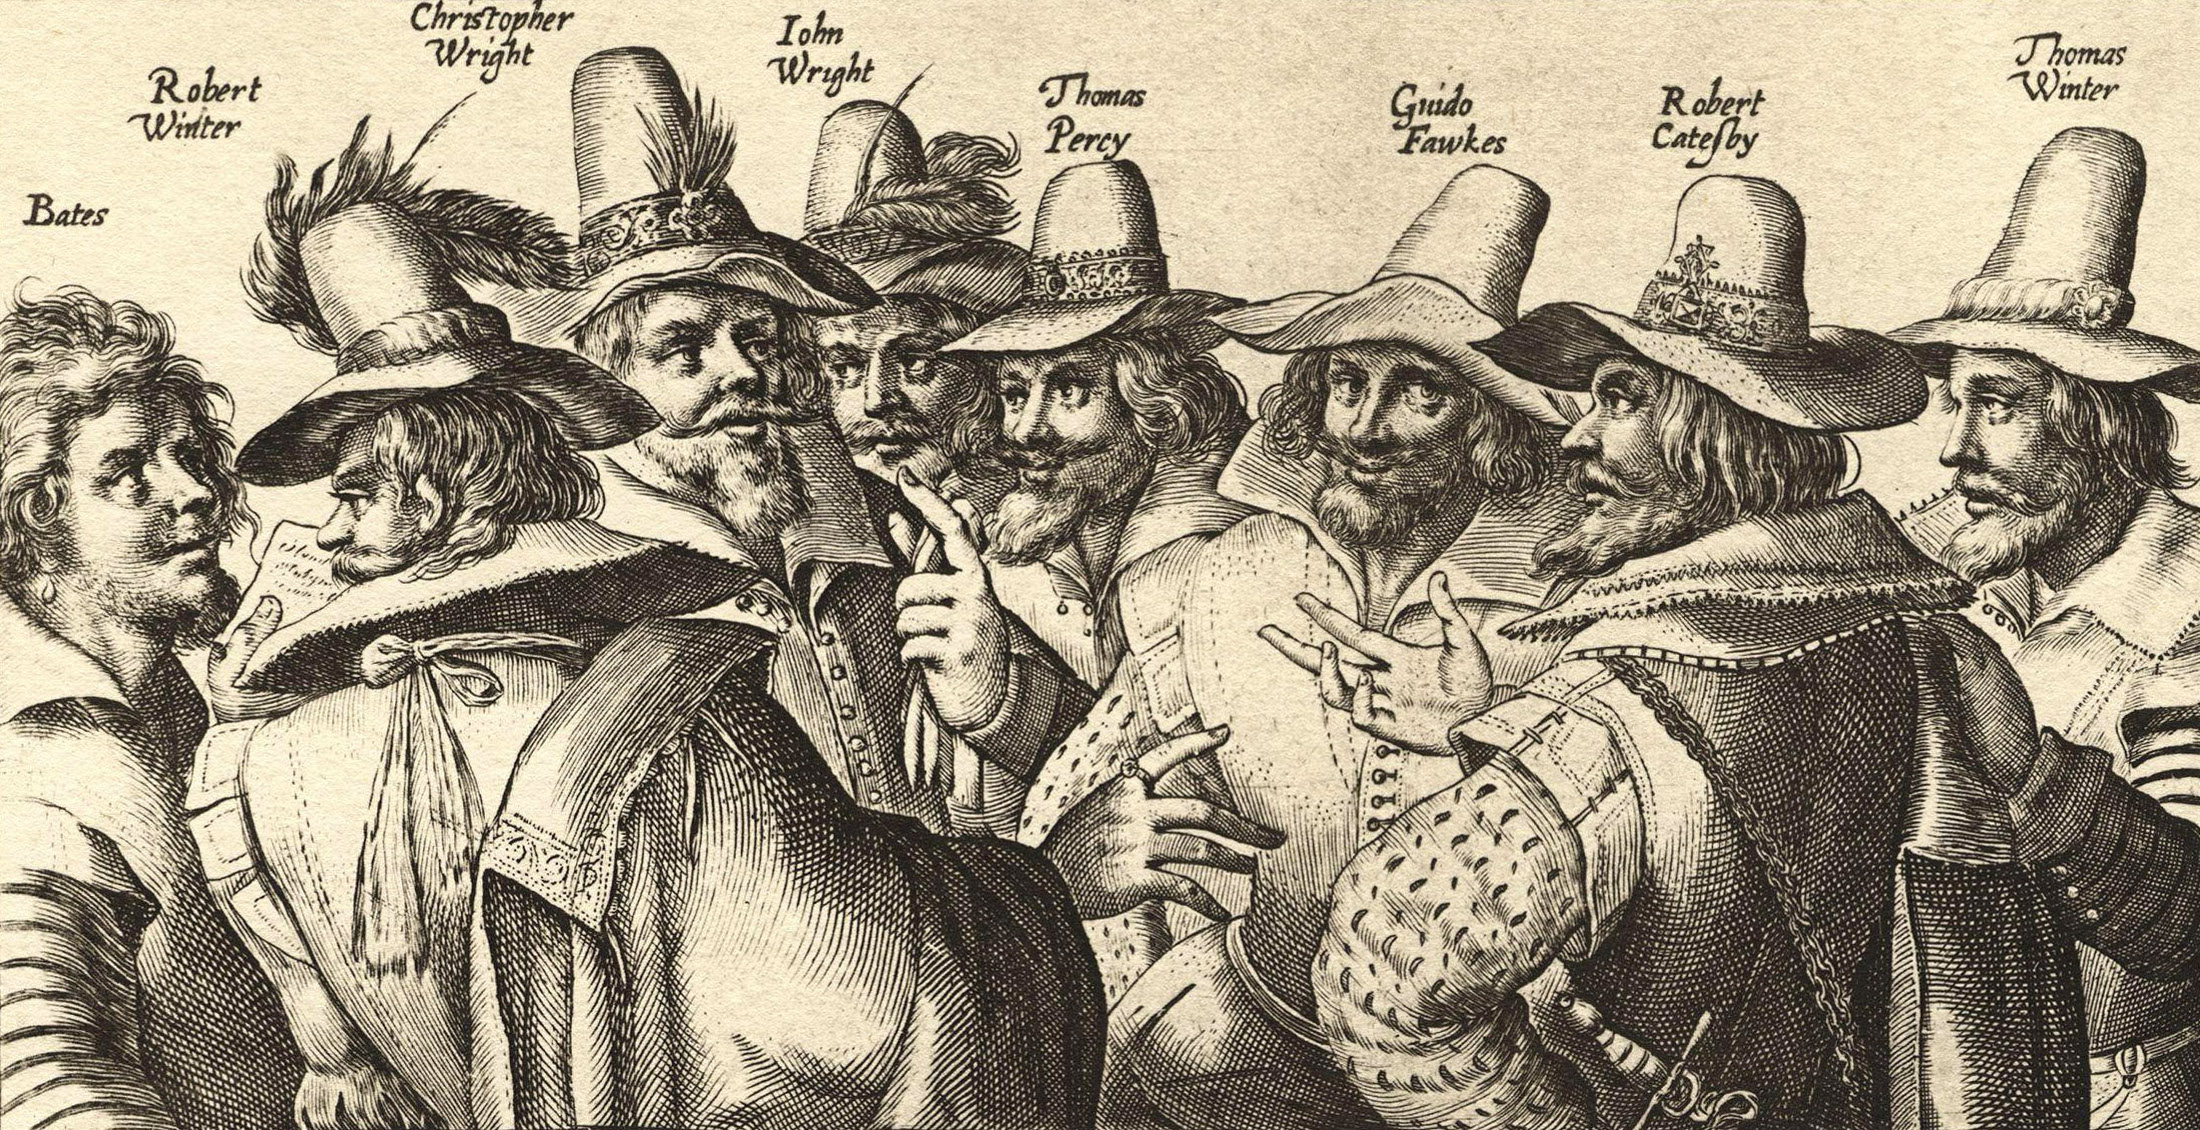 Guy Fawkes, third from right